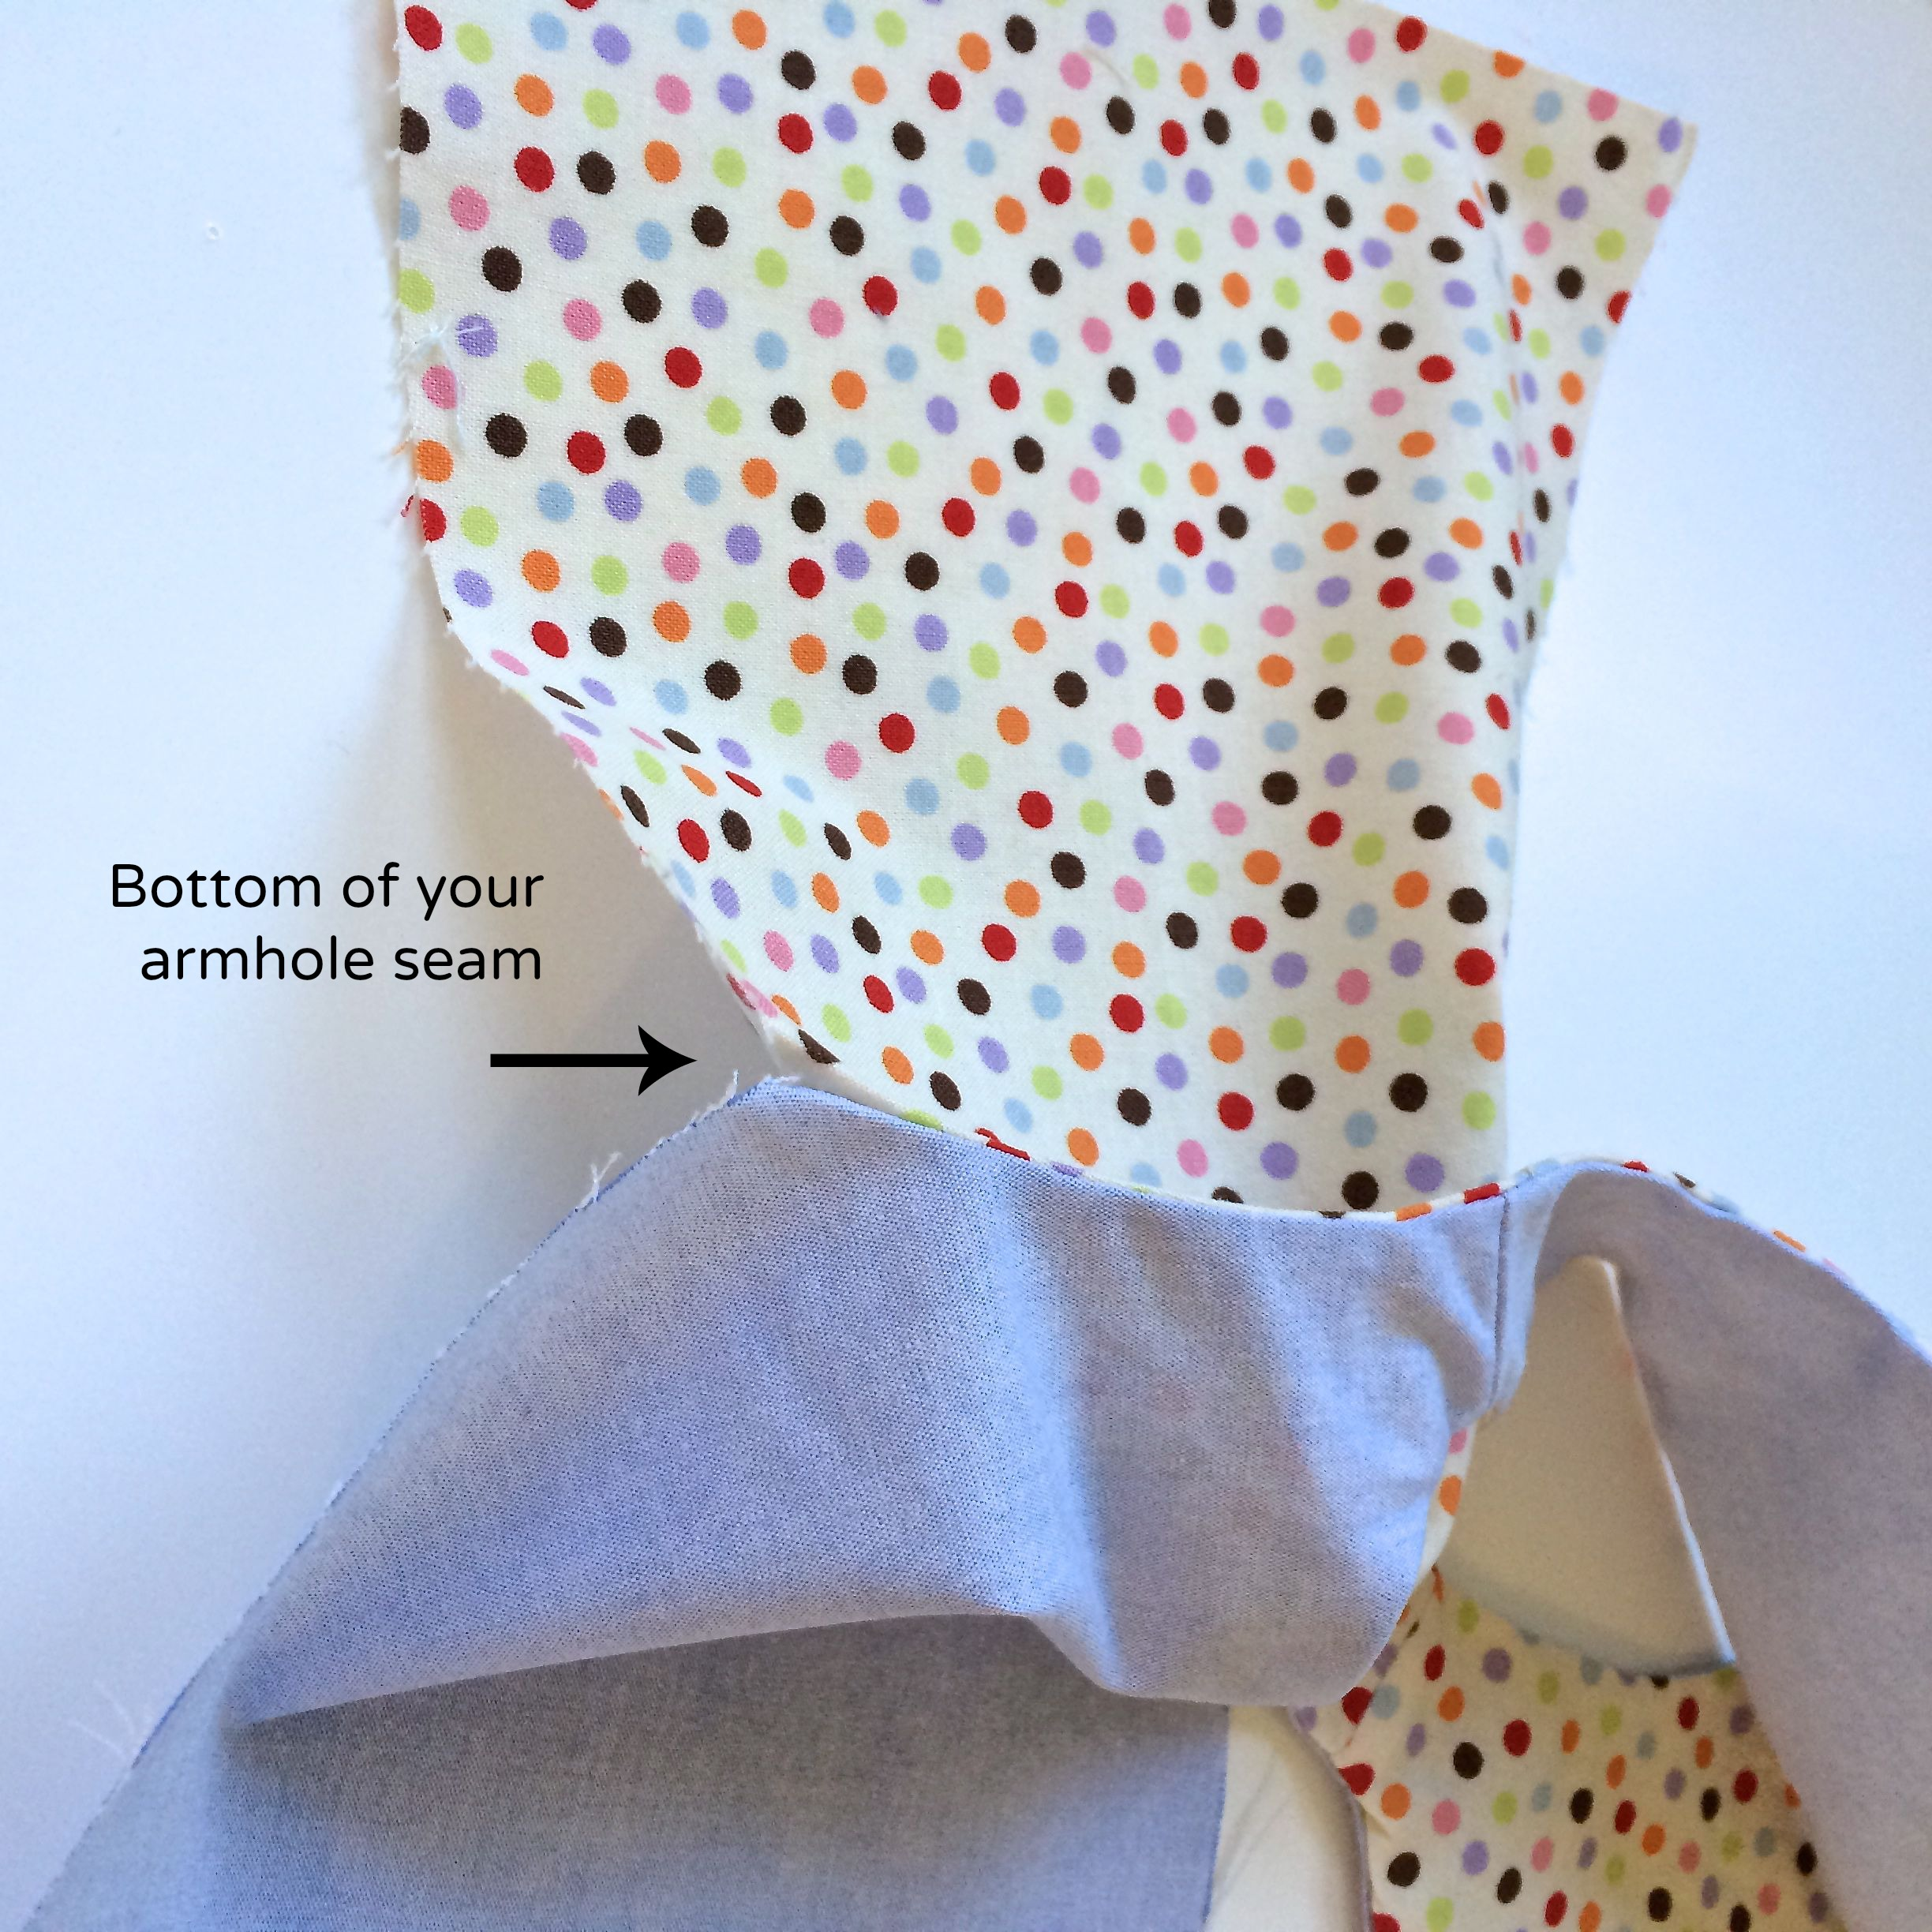 Match bottom of your armhole seams.